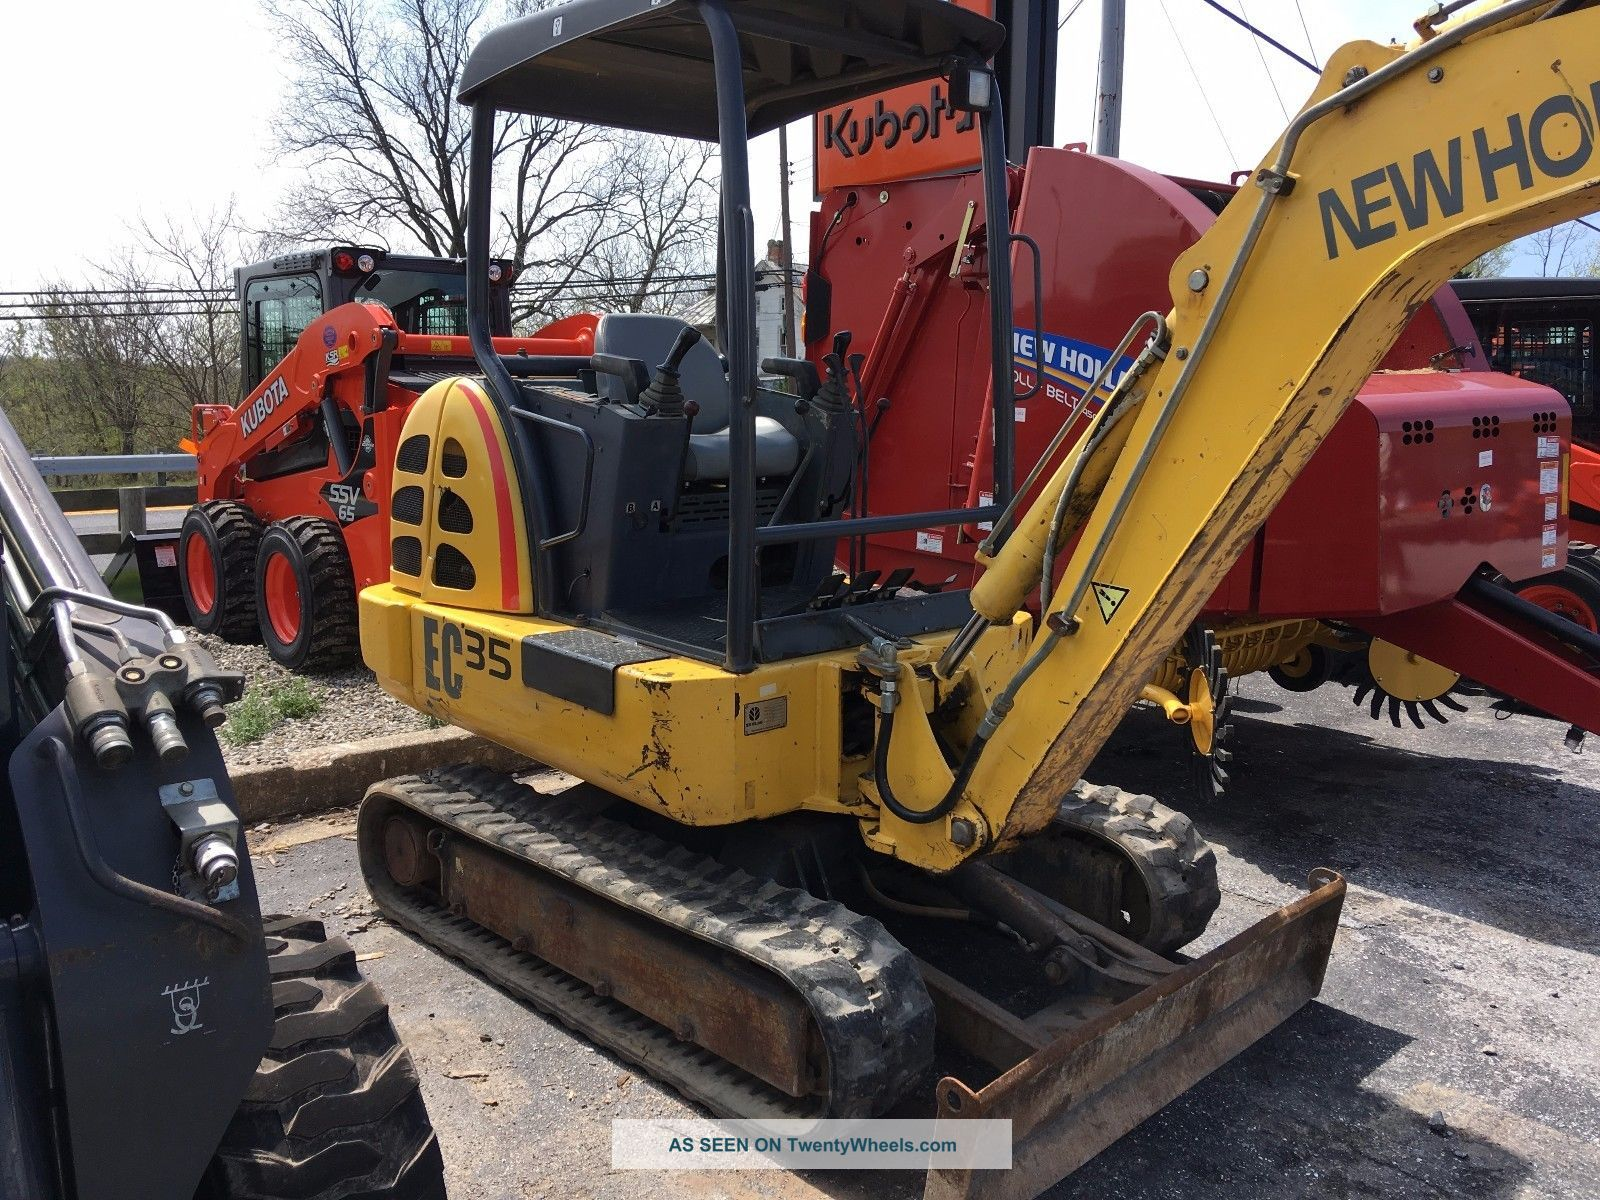 Holland Ec35 Excavators photo